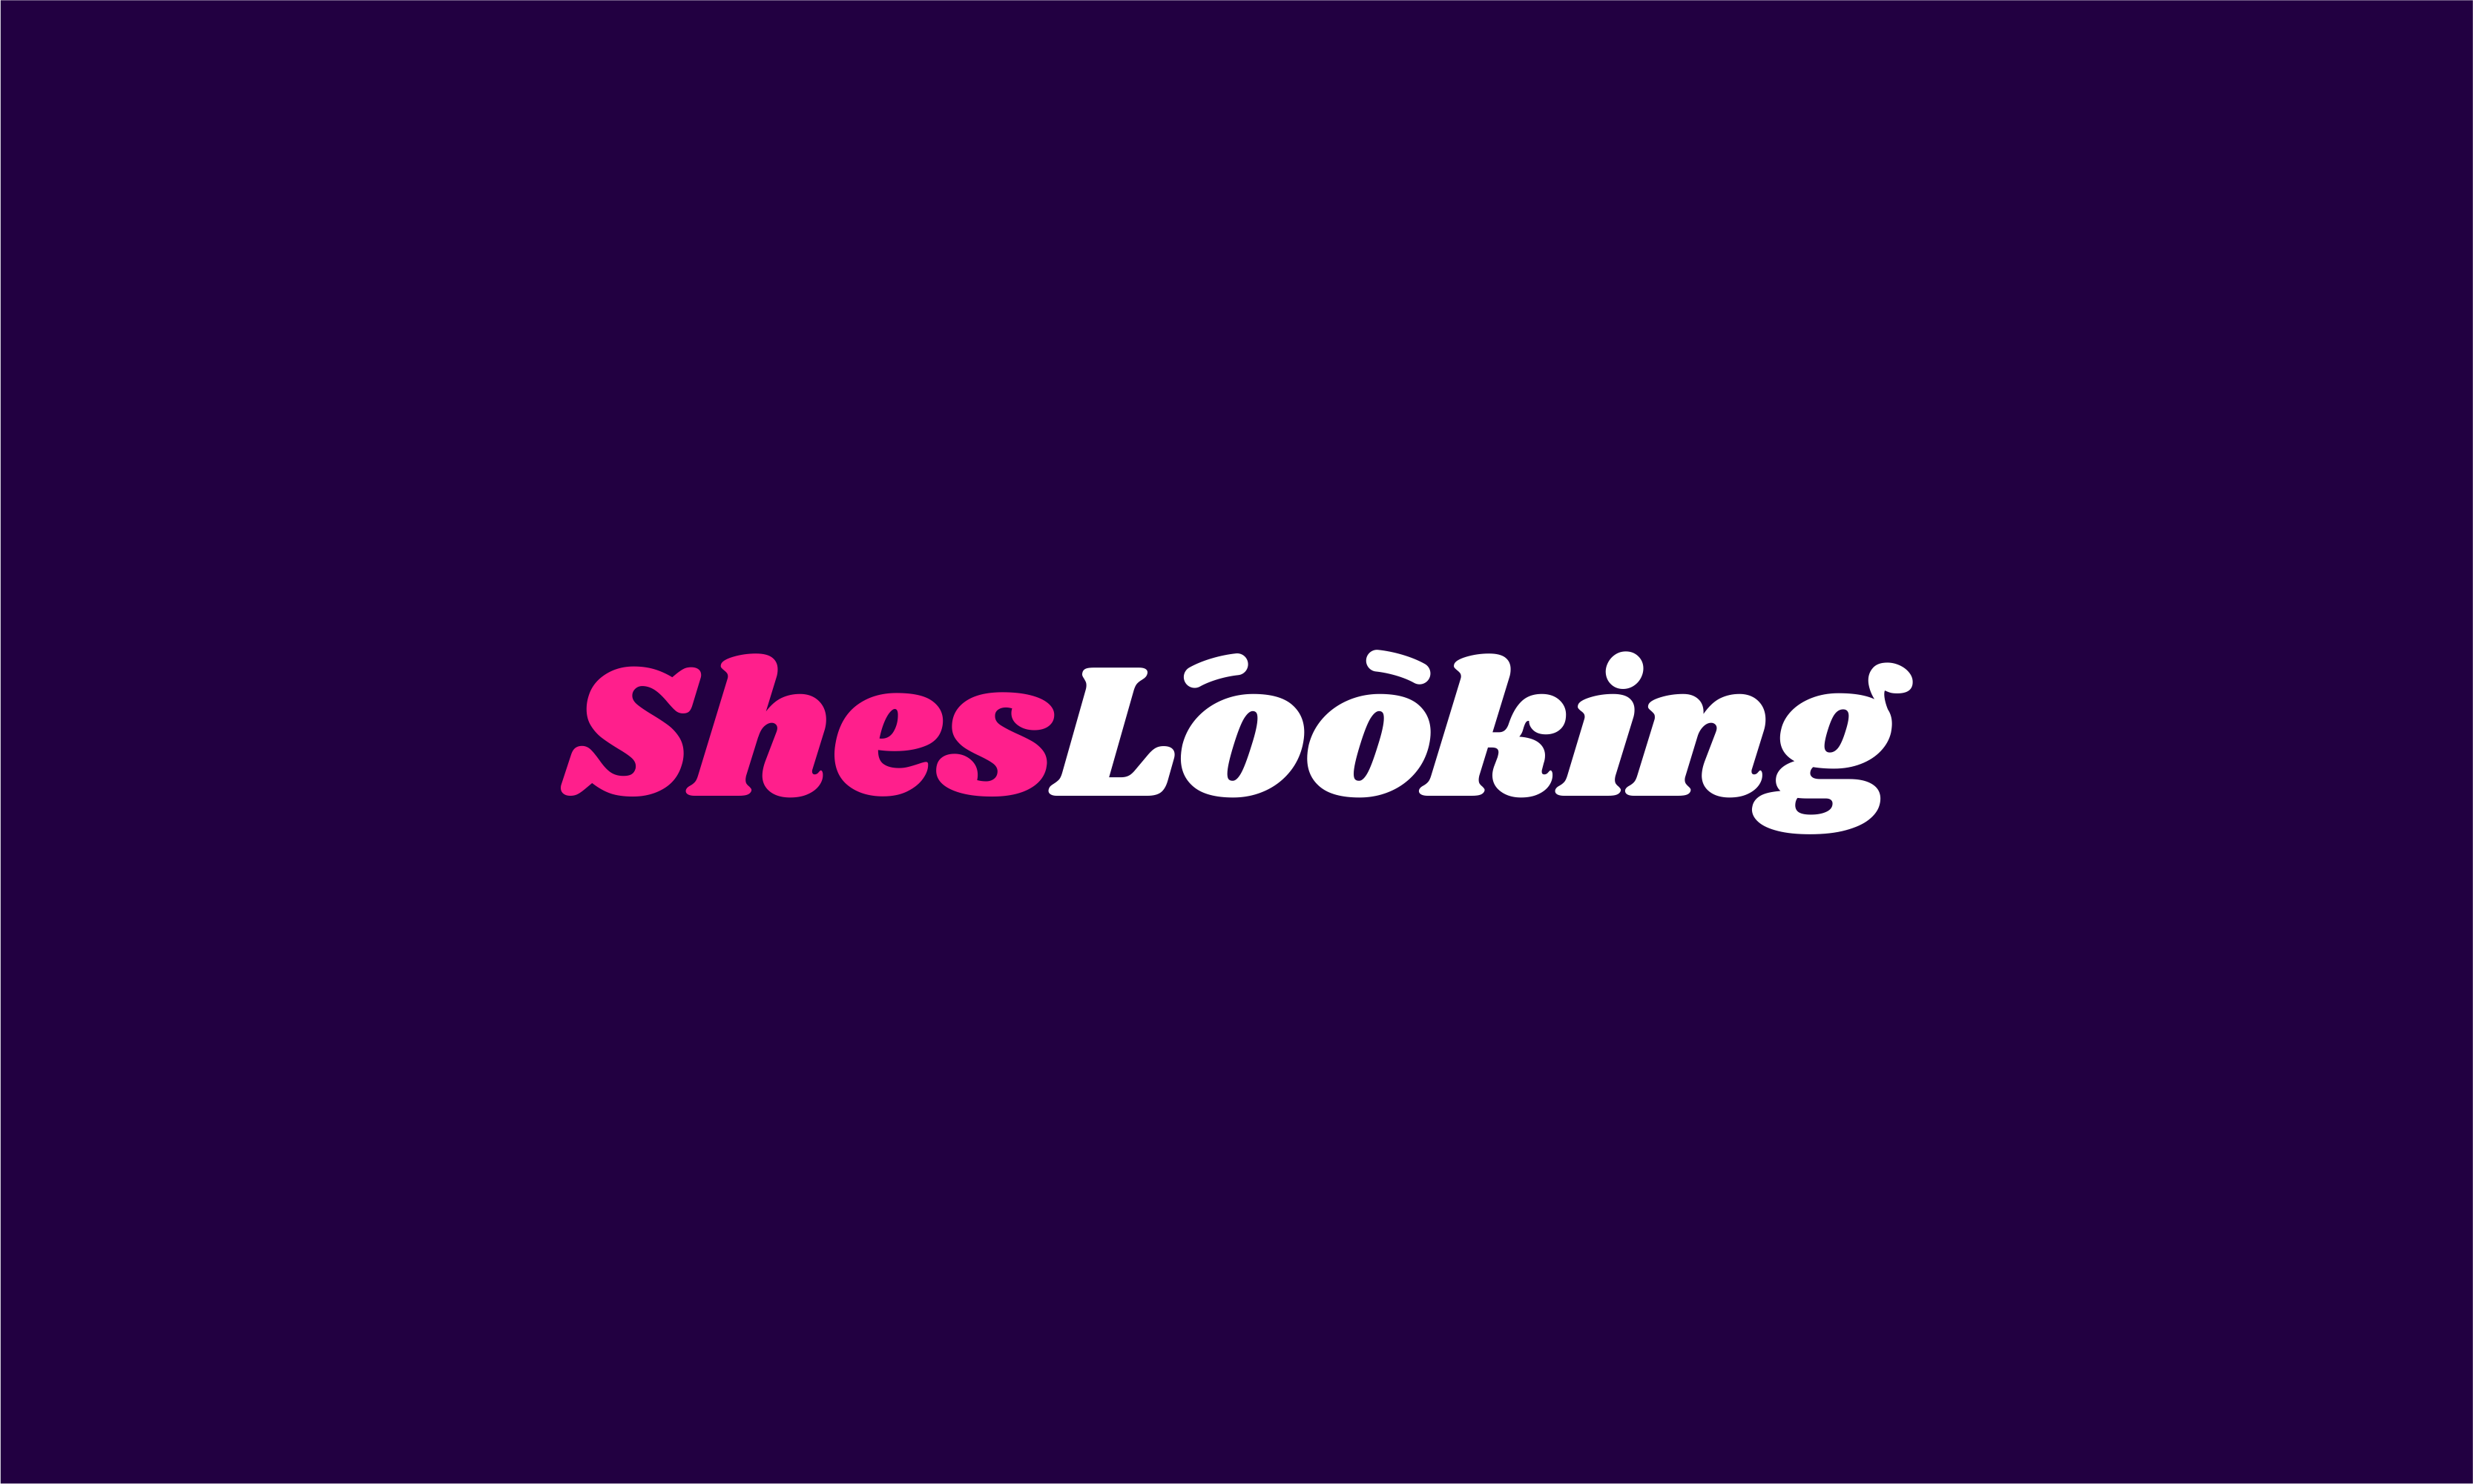 Sheslooking